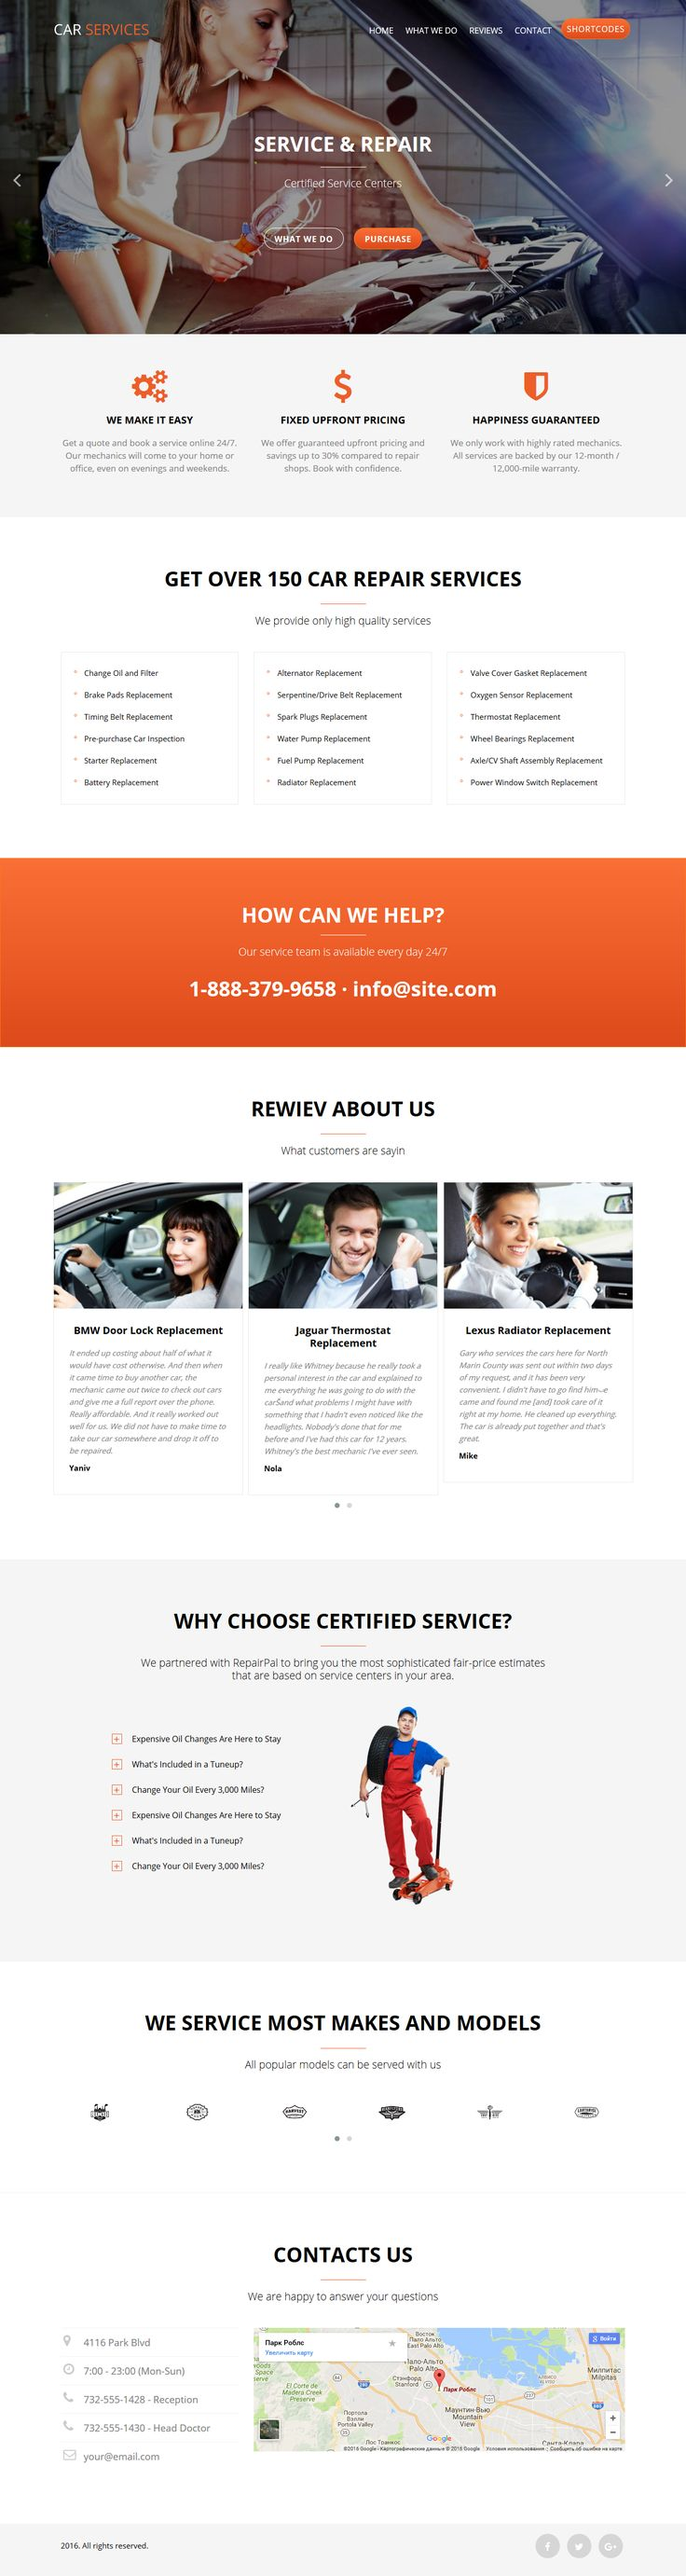 Car Services - Responsive Landing Page Template. Live Preview & Download: https://themeforest.net/item/car-services-responsive-landing-page/16544571?ref=ksioks